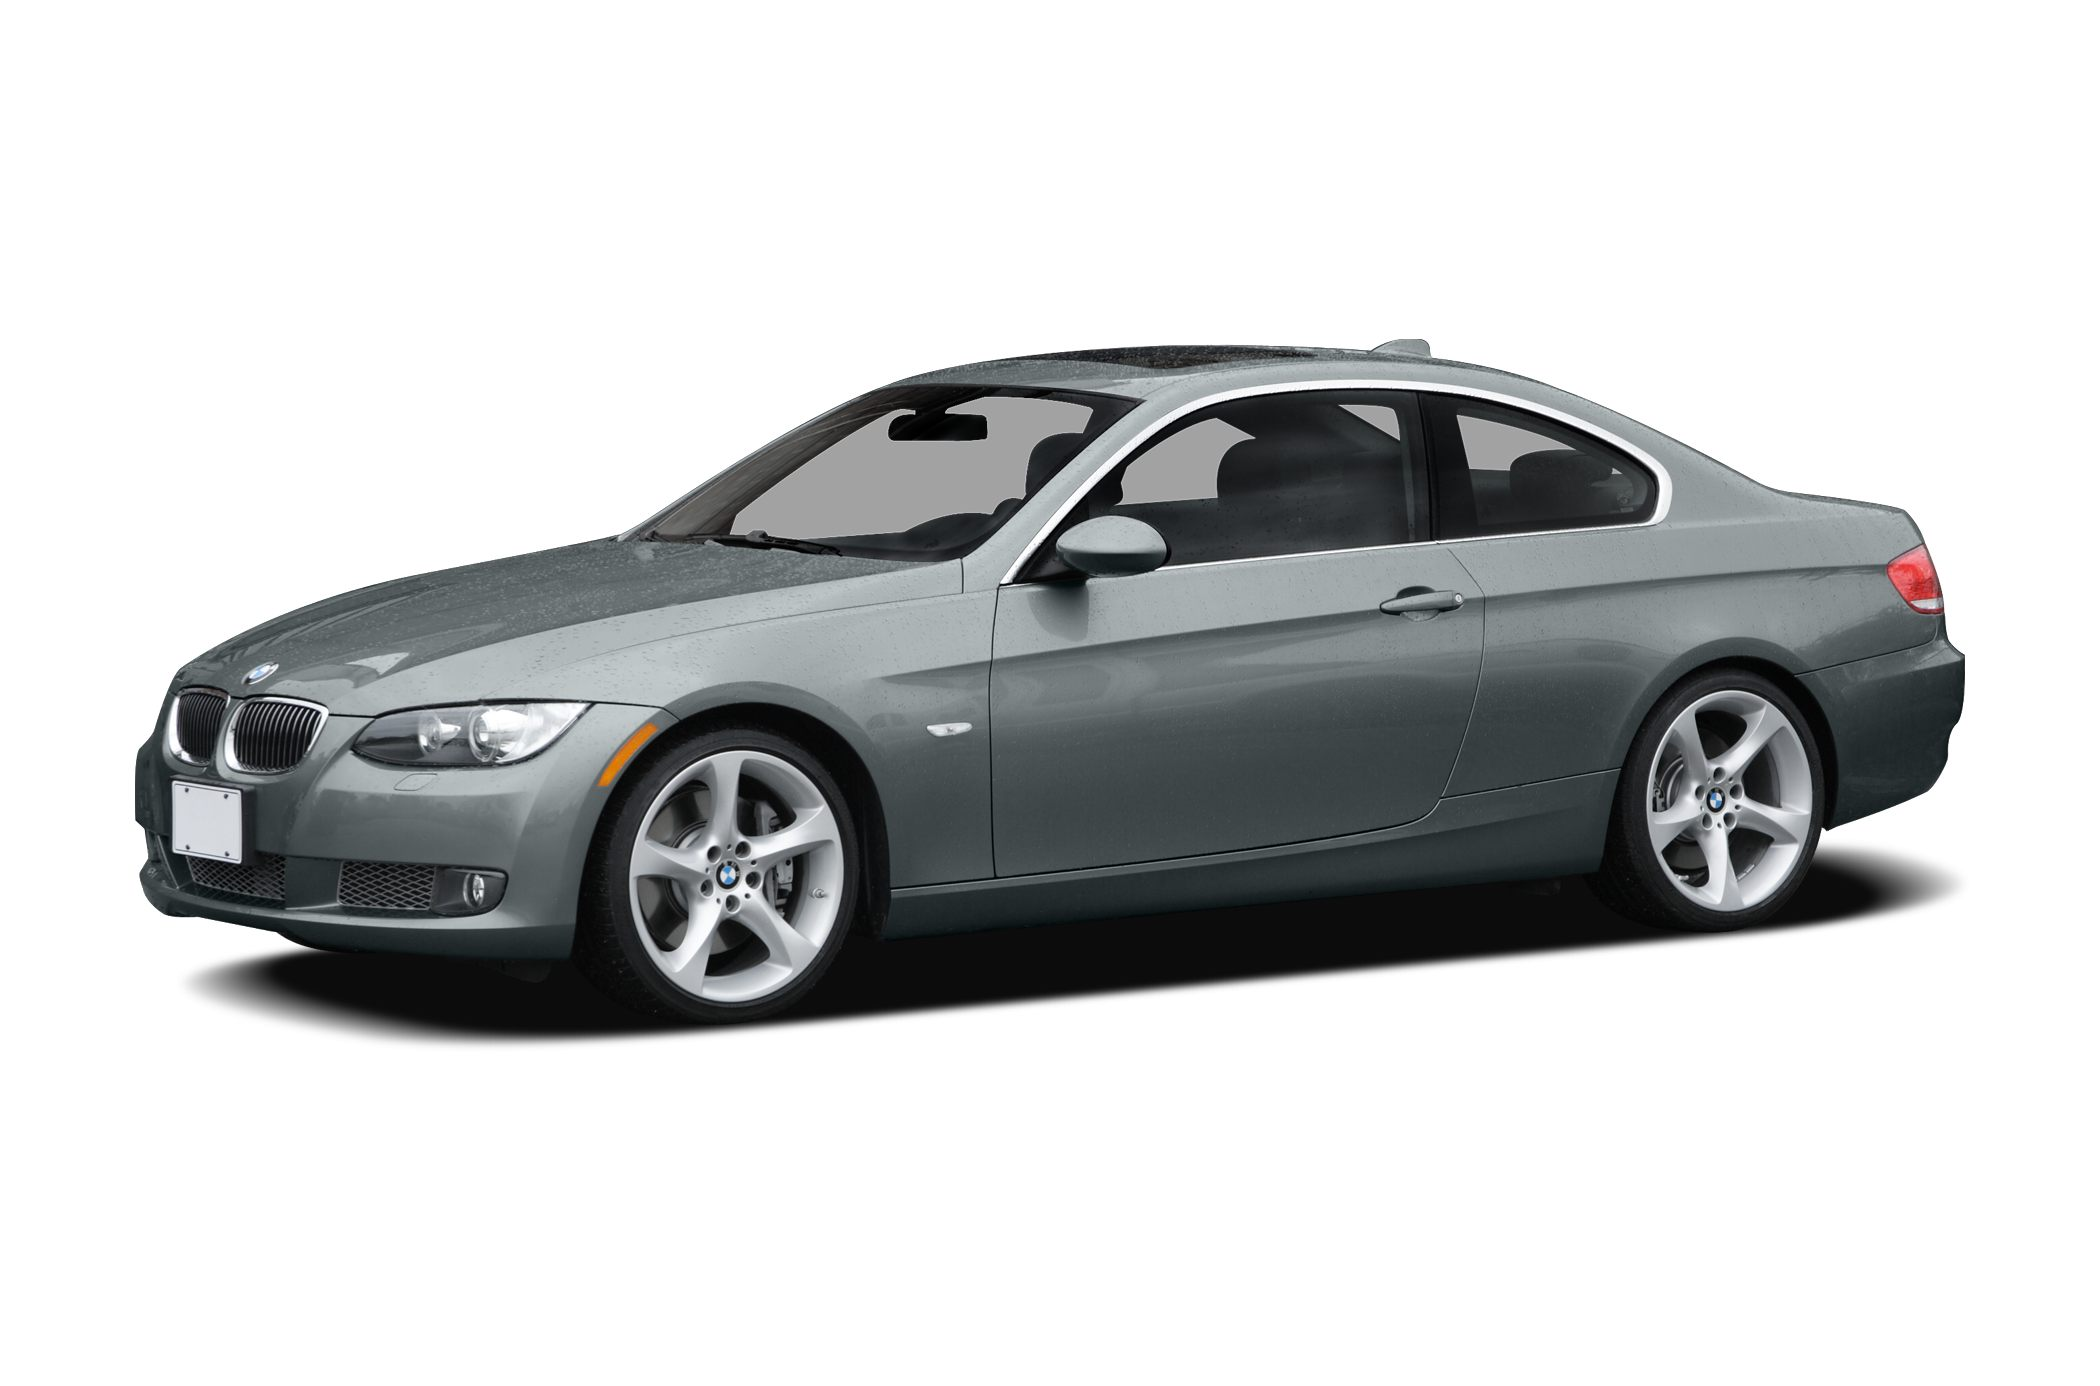 2007 BMW 328 Specs and Prices